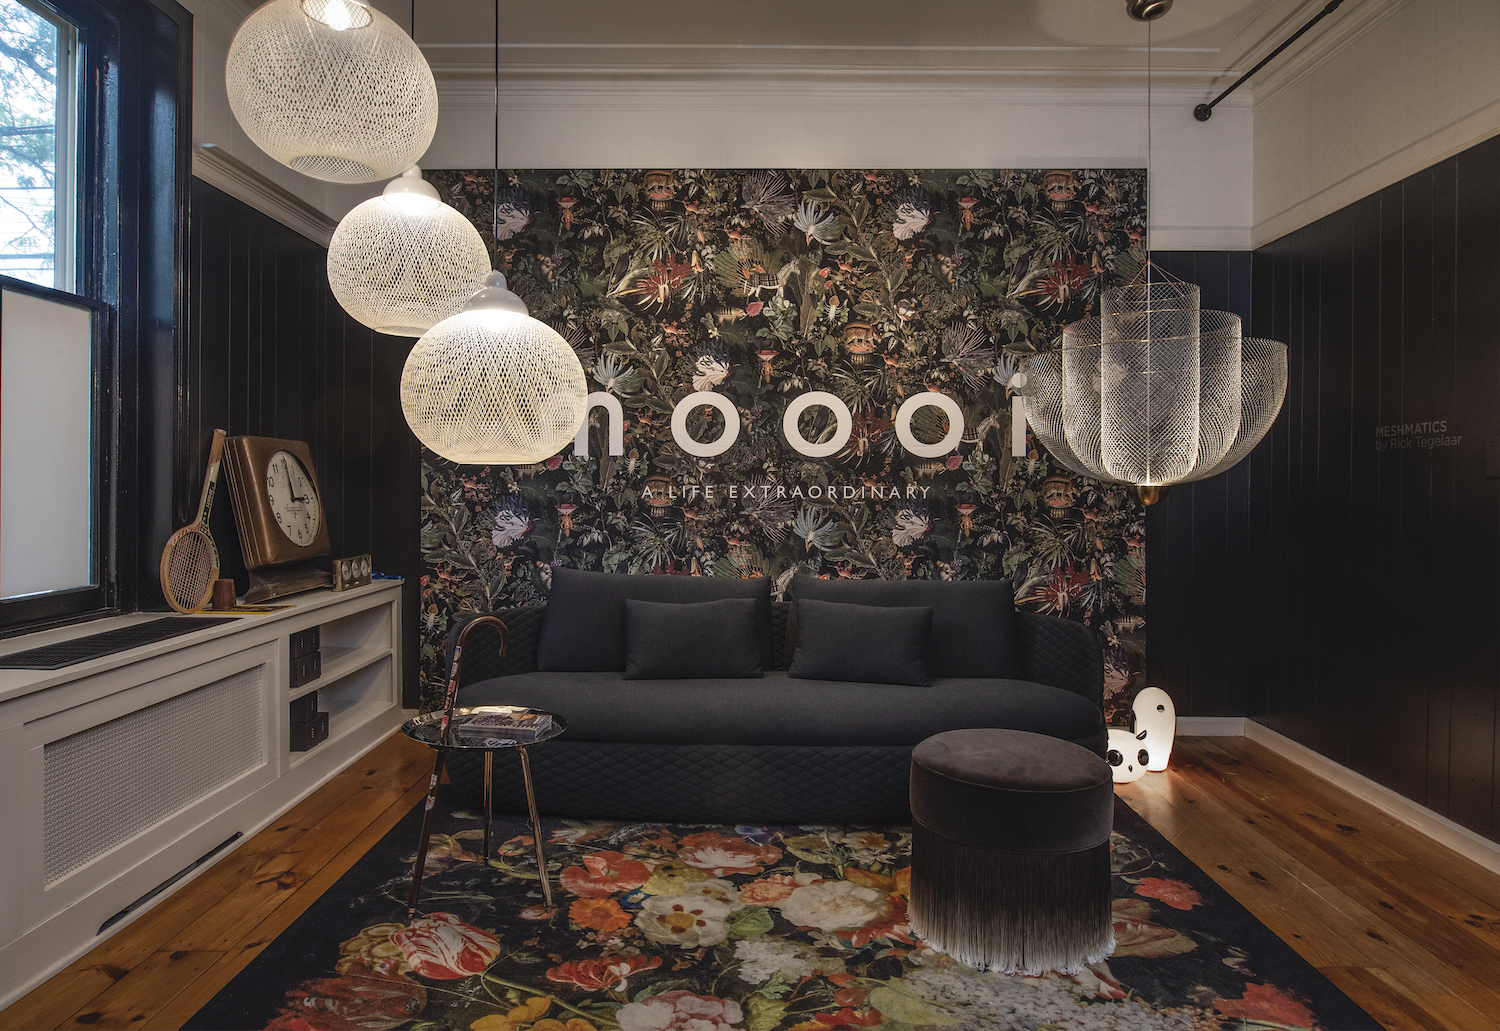 Moooi Exhibition Currently on View in Rhinebeck, NY!  - Blog Image